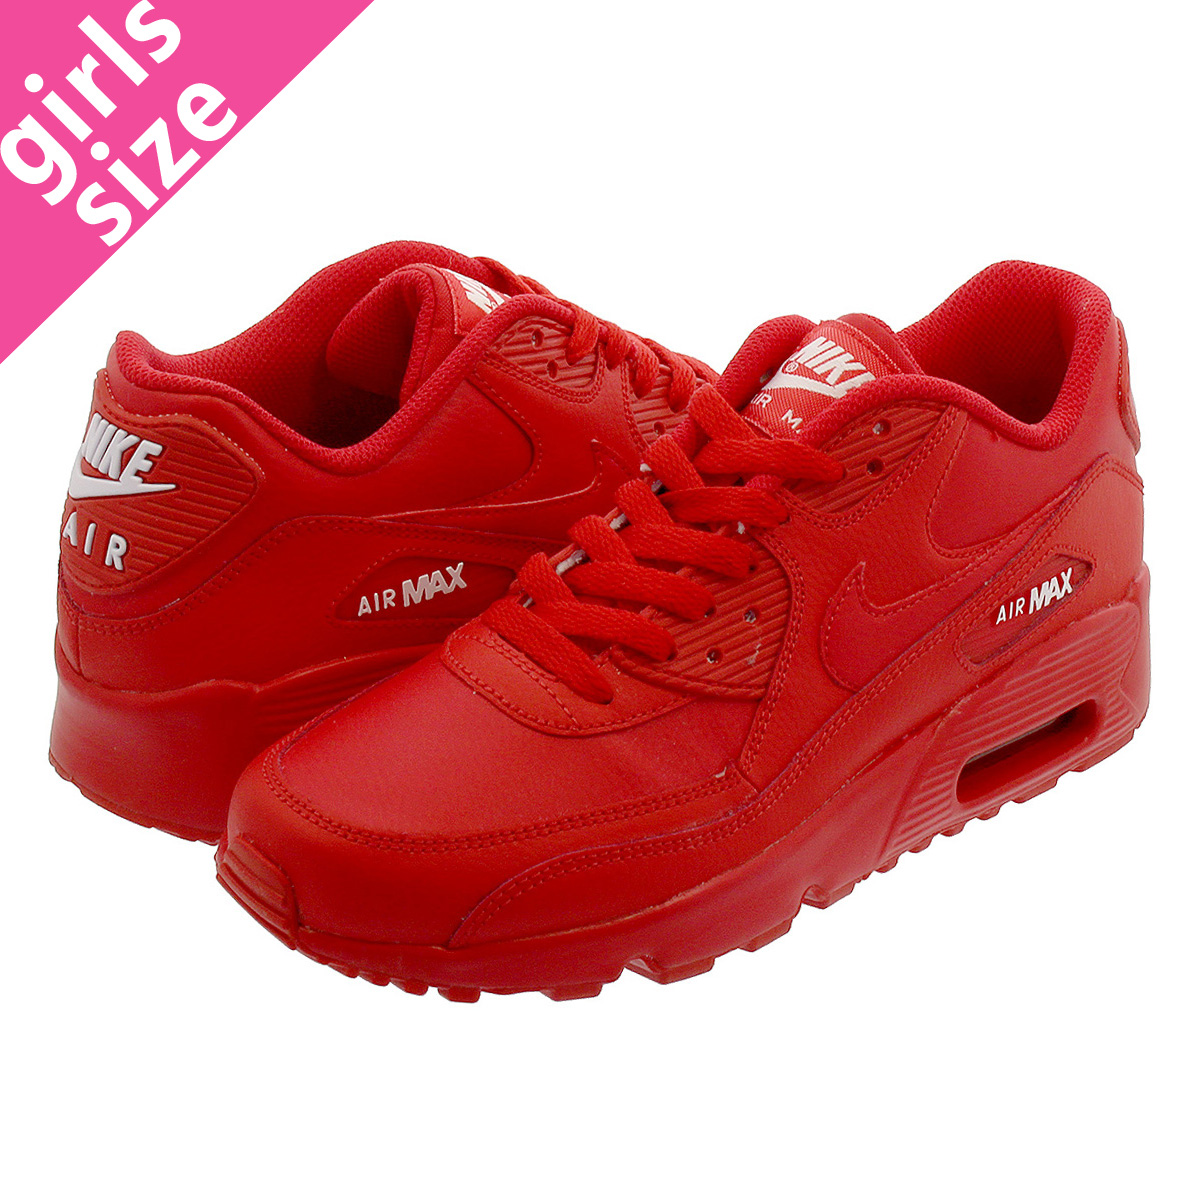 purchase cheap d89a1 07ef9 NIKE AIR MAX 90 LTR GS Kie Ney AMAX 90 leather GS UNIVERSITY RED 833,412-606